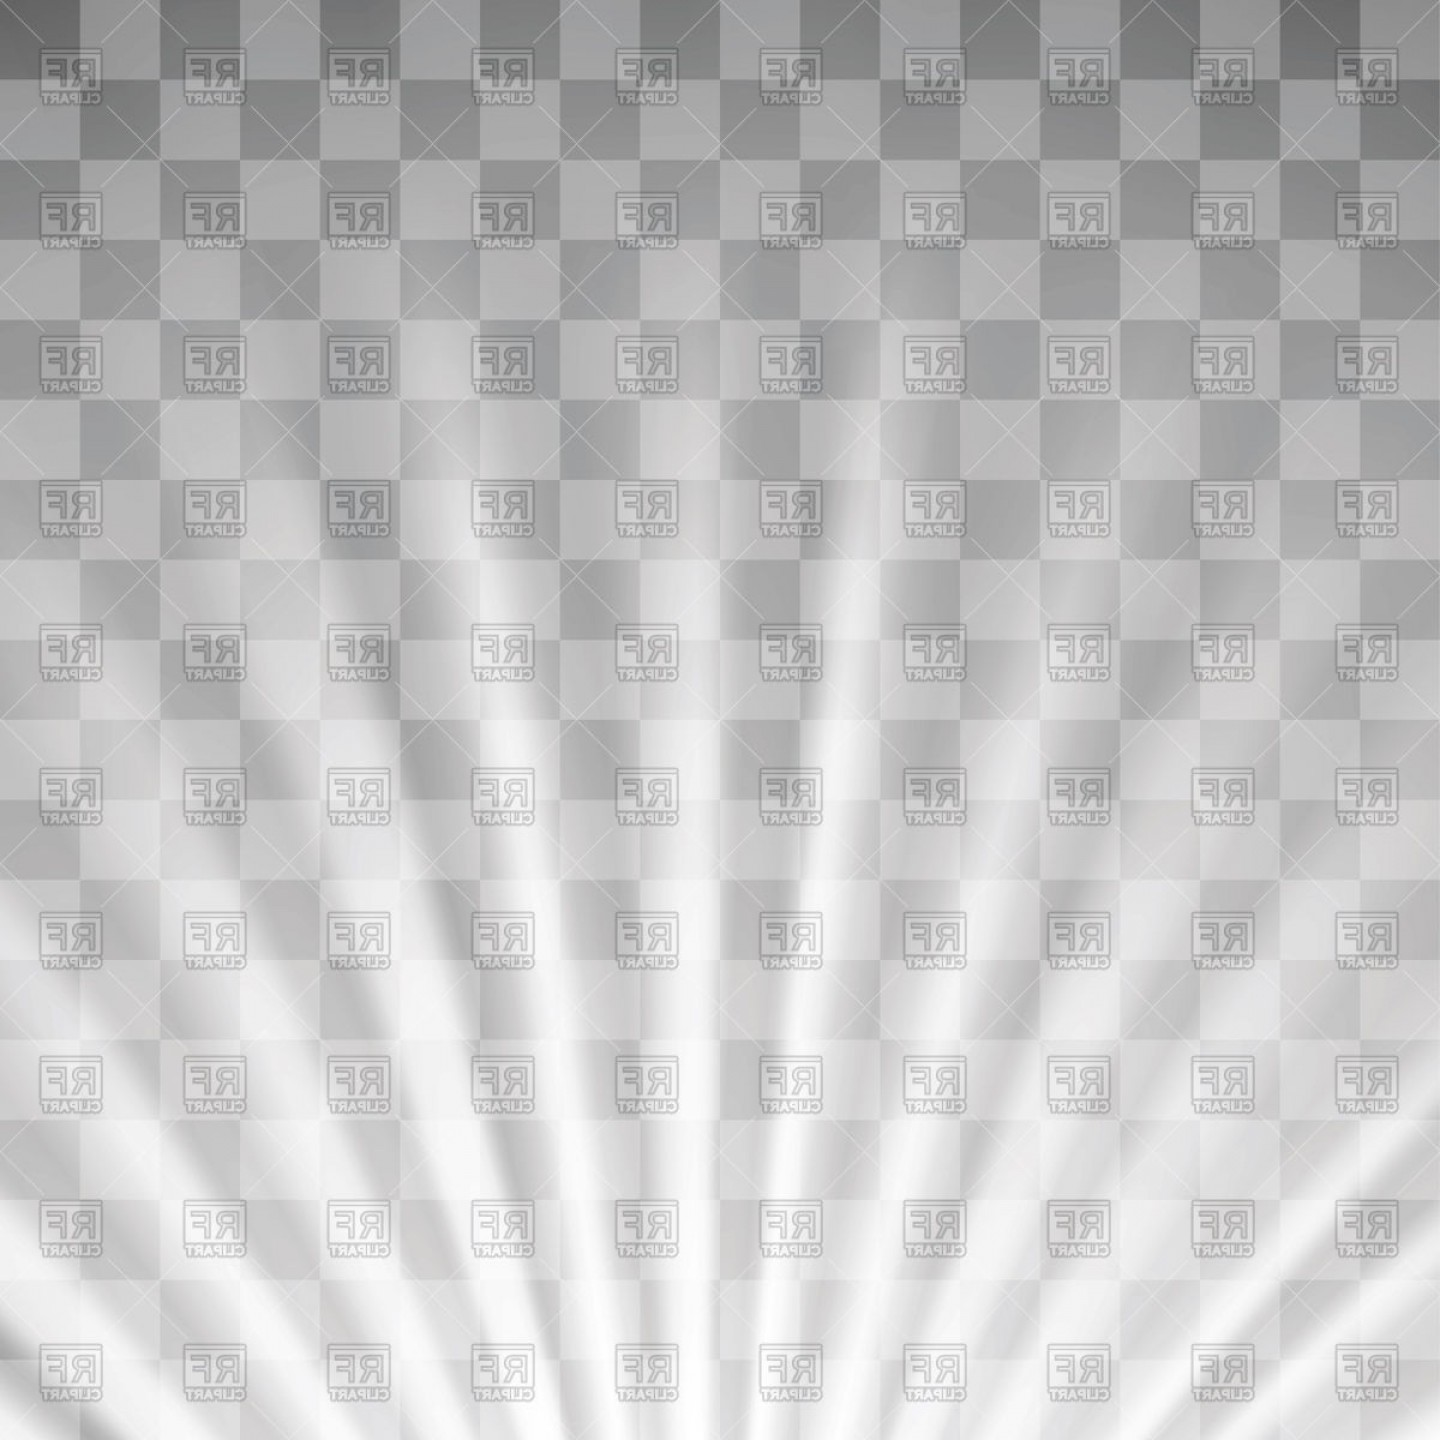 Twinkle Light Vector: Transparent Light On Gray Checkered Background Vector Clipart